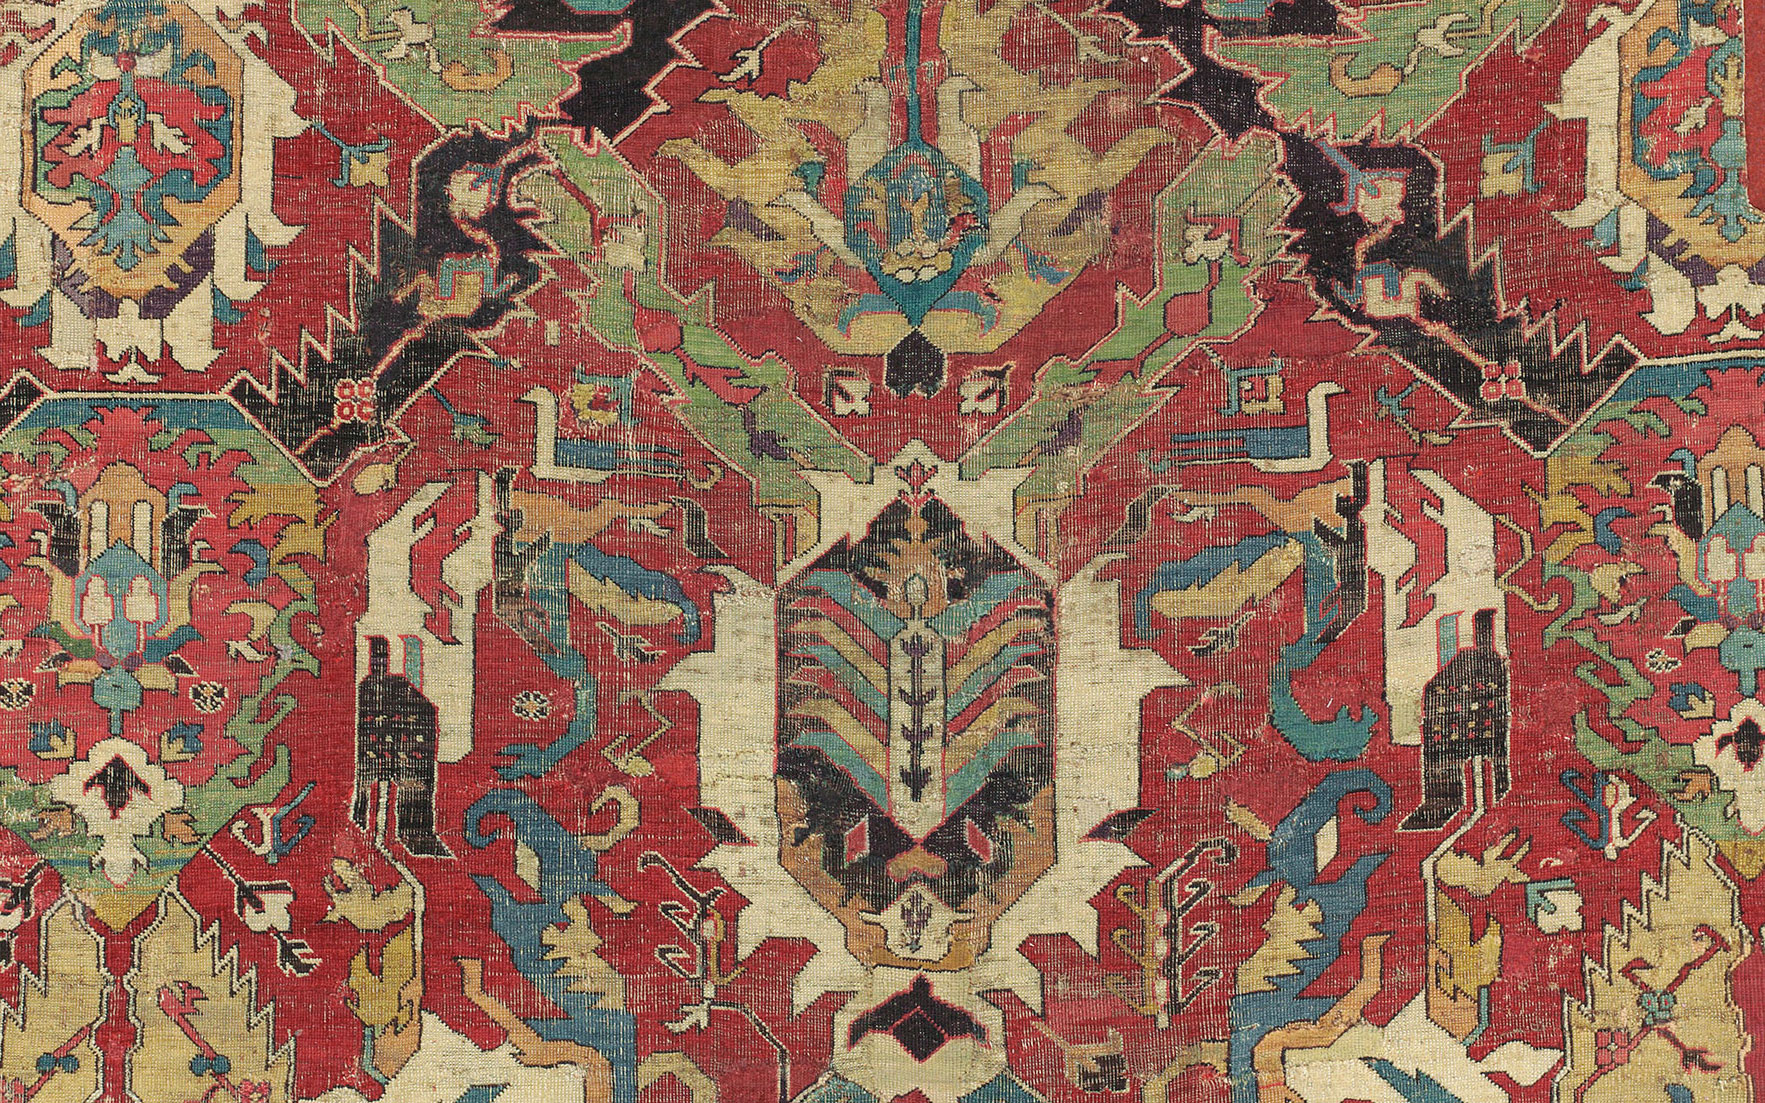 Detail of the Charles Deering Caucasian dragon carpet fragment, probably Karabagh, south Caucasus, late 17thearly 18th century. 15 ft 1 in x 5 ft 4 in (459 cm x 161 cm). Sold for £118,750 on 27